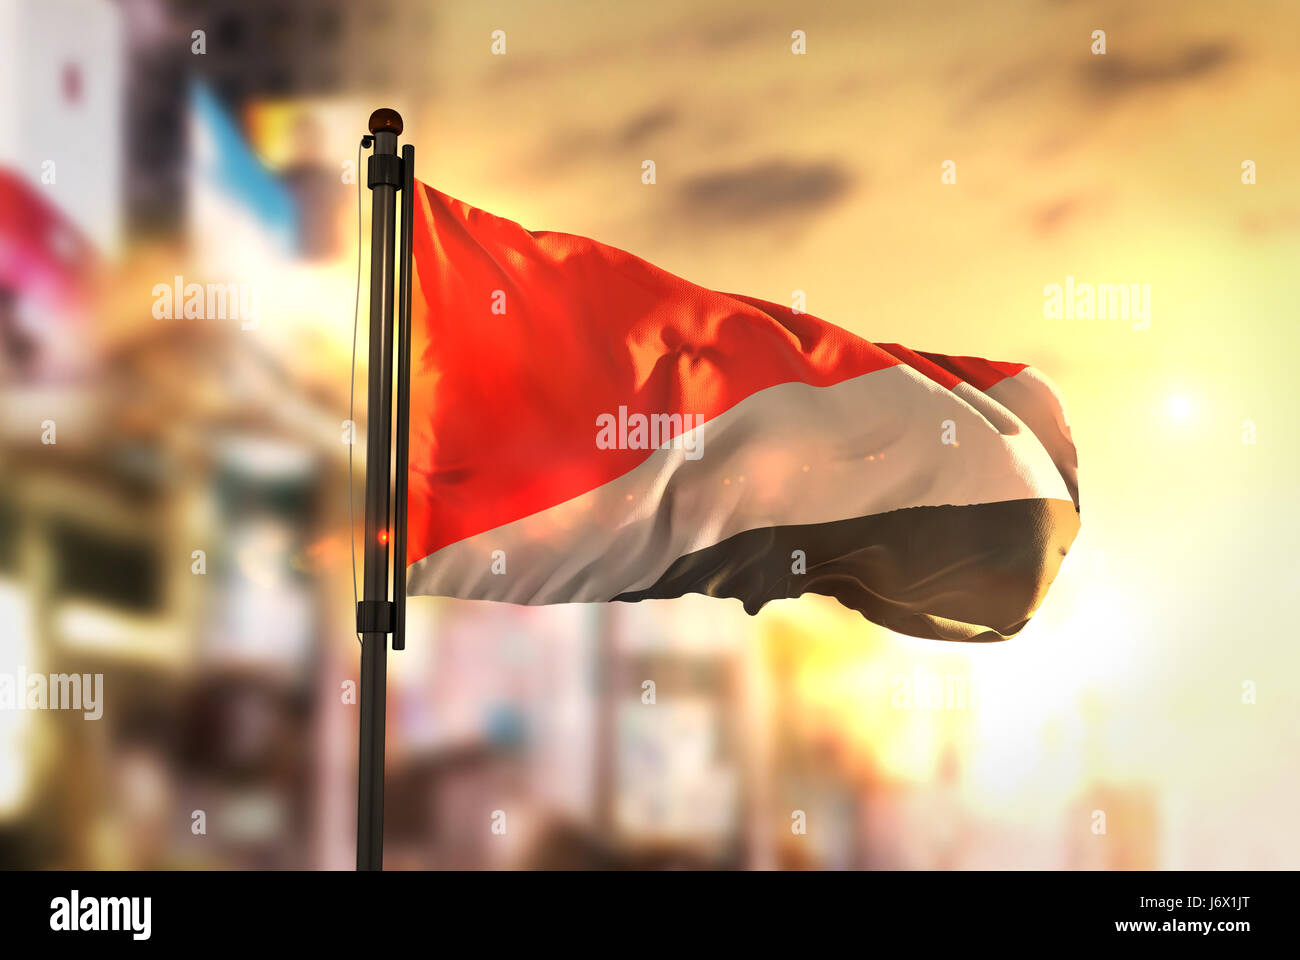 Principality of Sealand Flag Against City Blurred Background At Sunrise Backlight - Stock Image